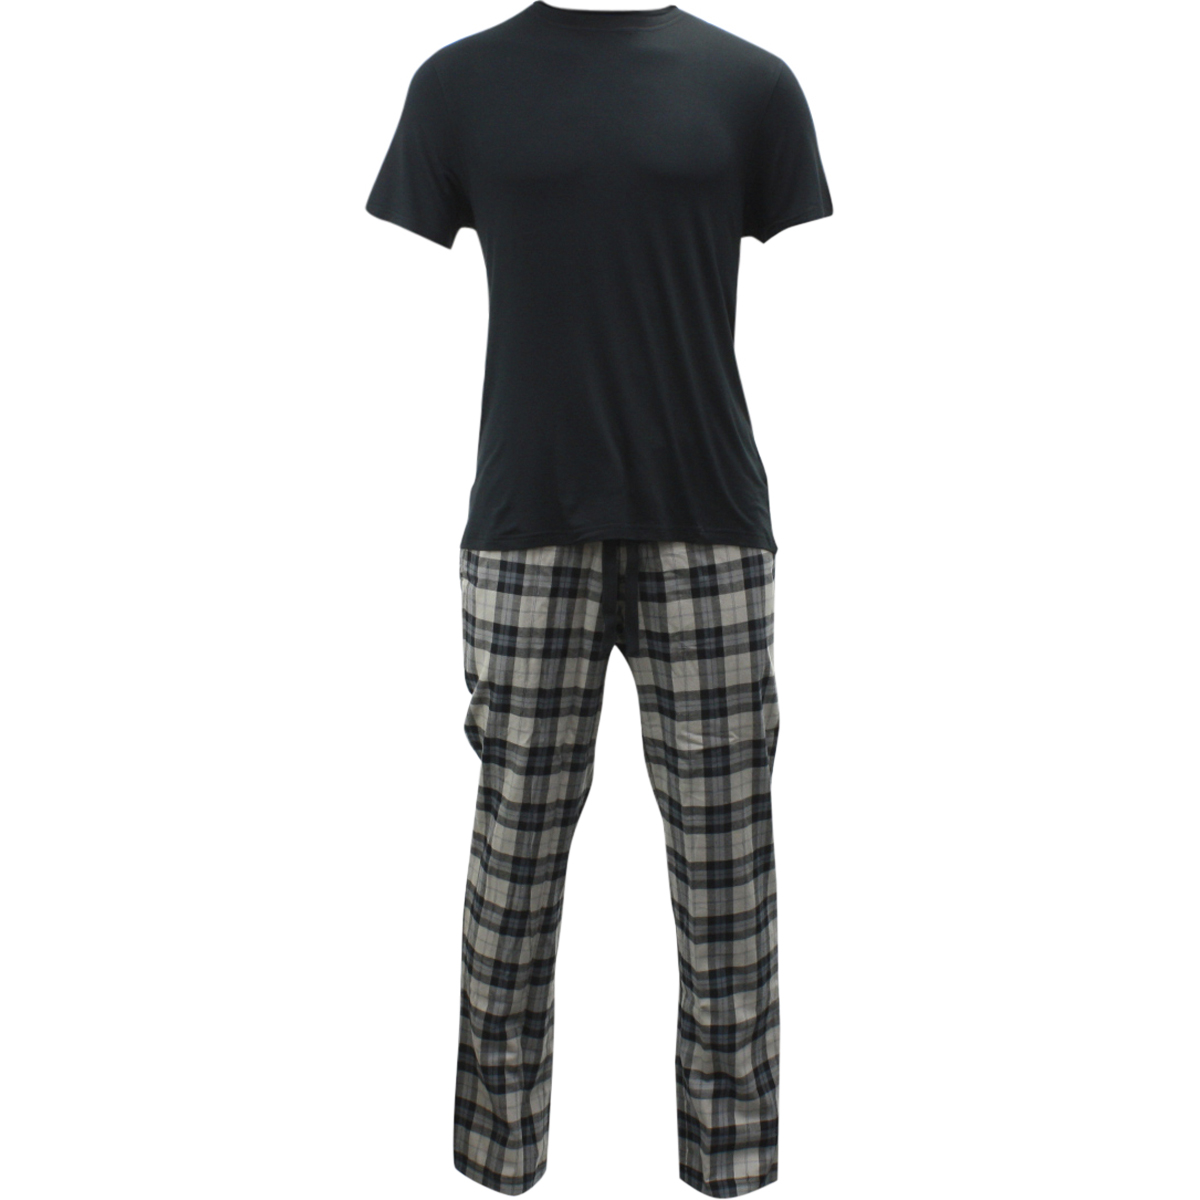 Image of Ugg Men's Grant Pants & Short Sleeve Shirt Pajama Set - Black - Large